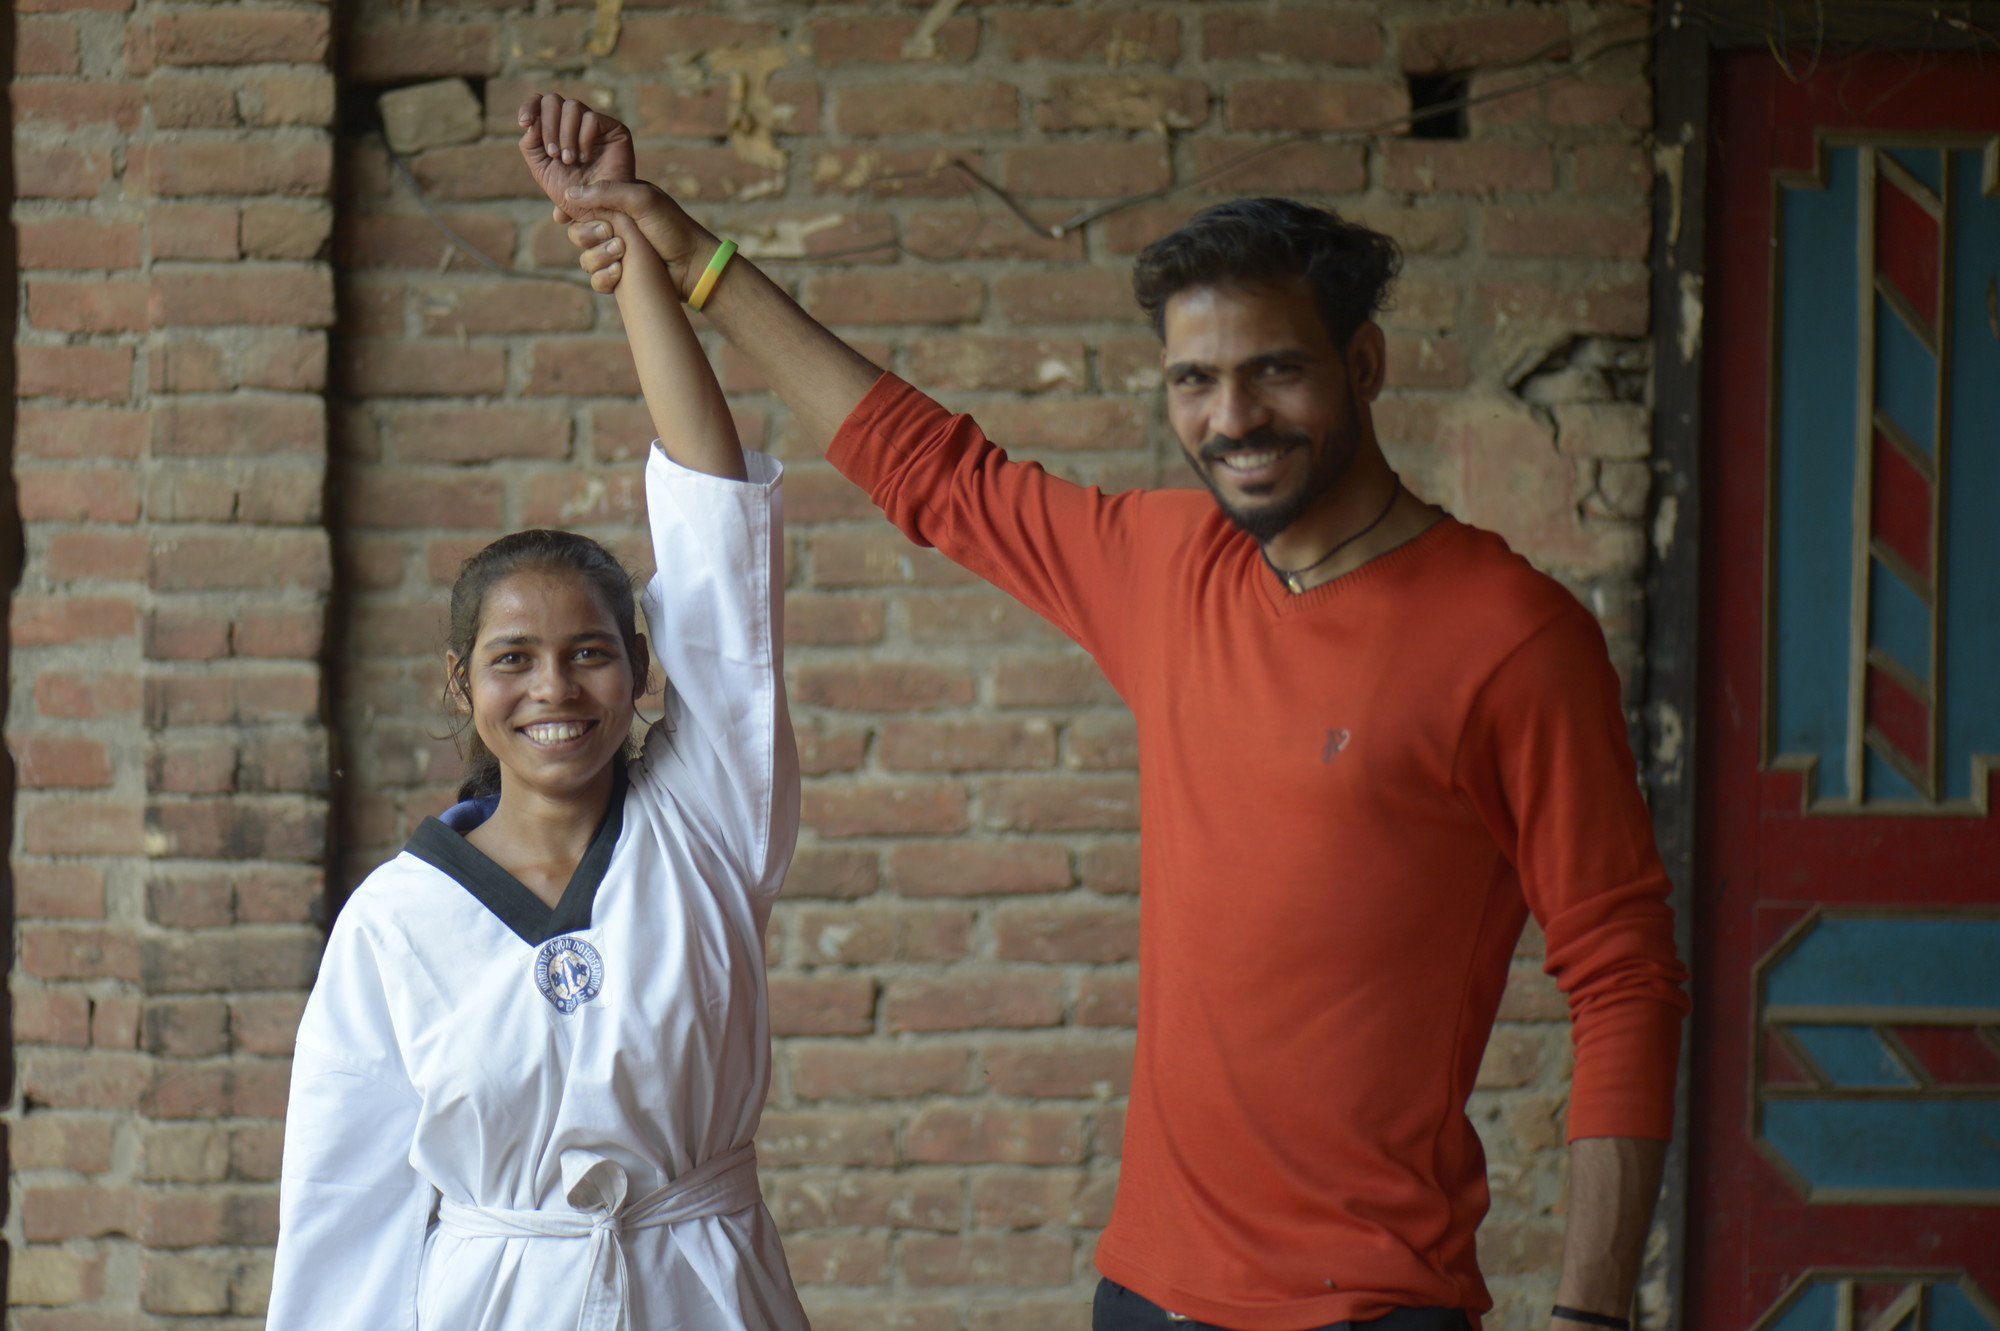 Amit Kumar works 14 hours a day to pay for his sister Dolly's schooling and support her martial-arts competition fees.